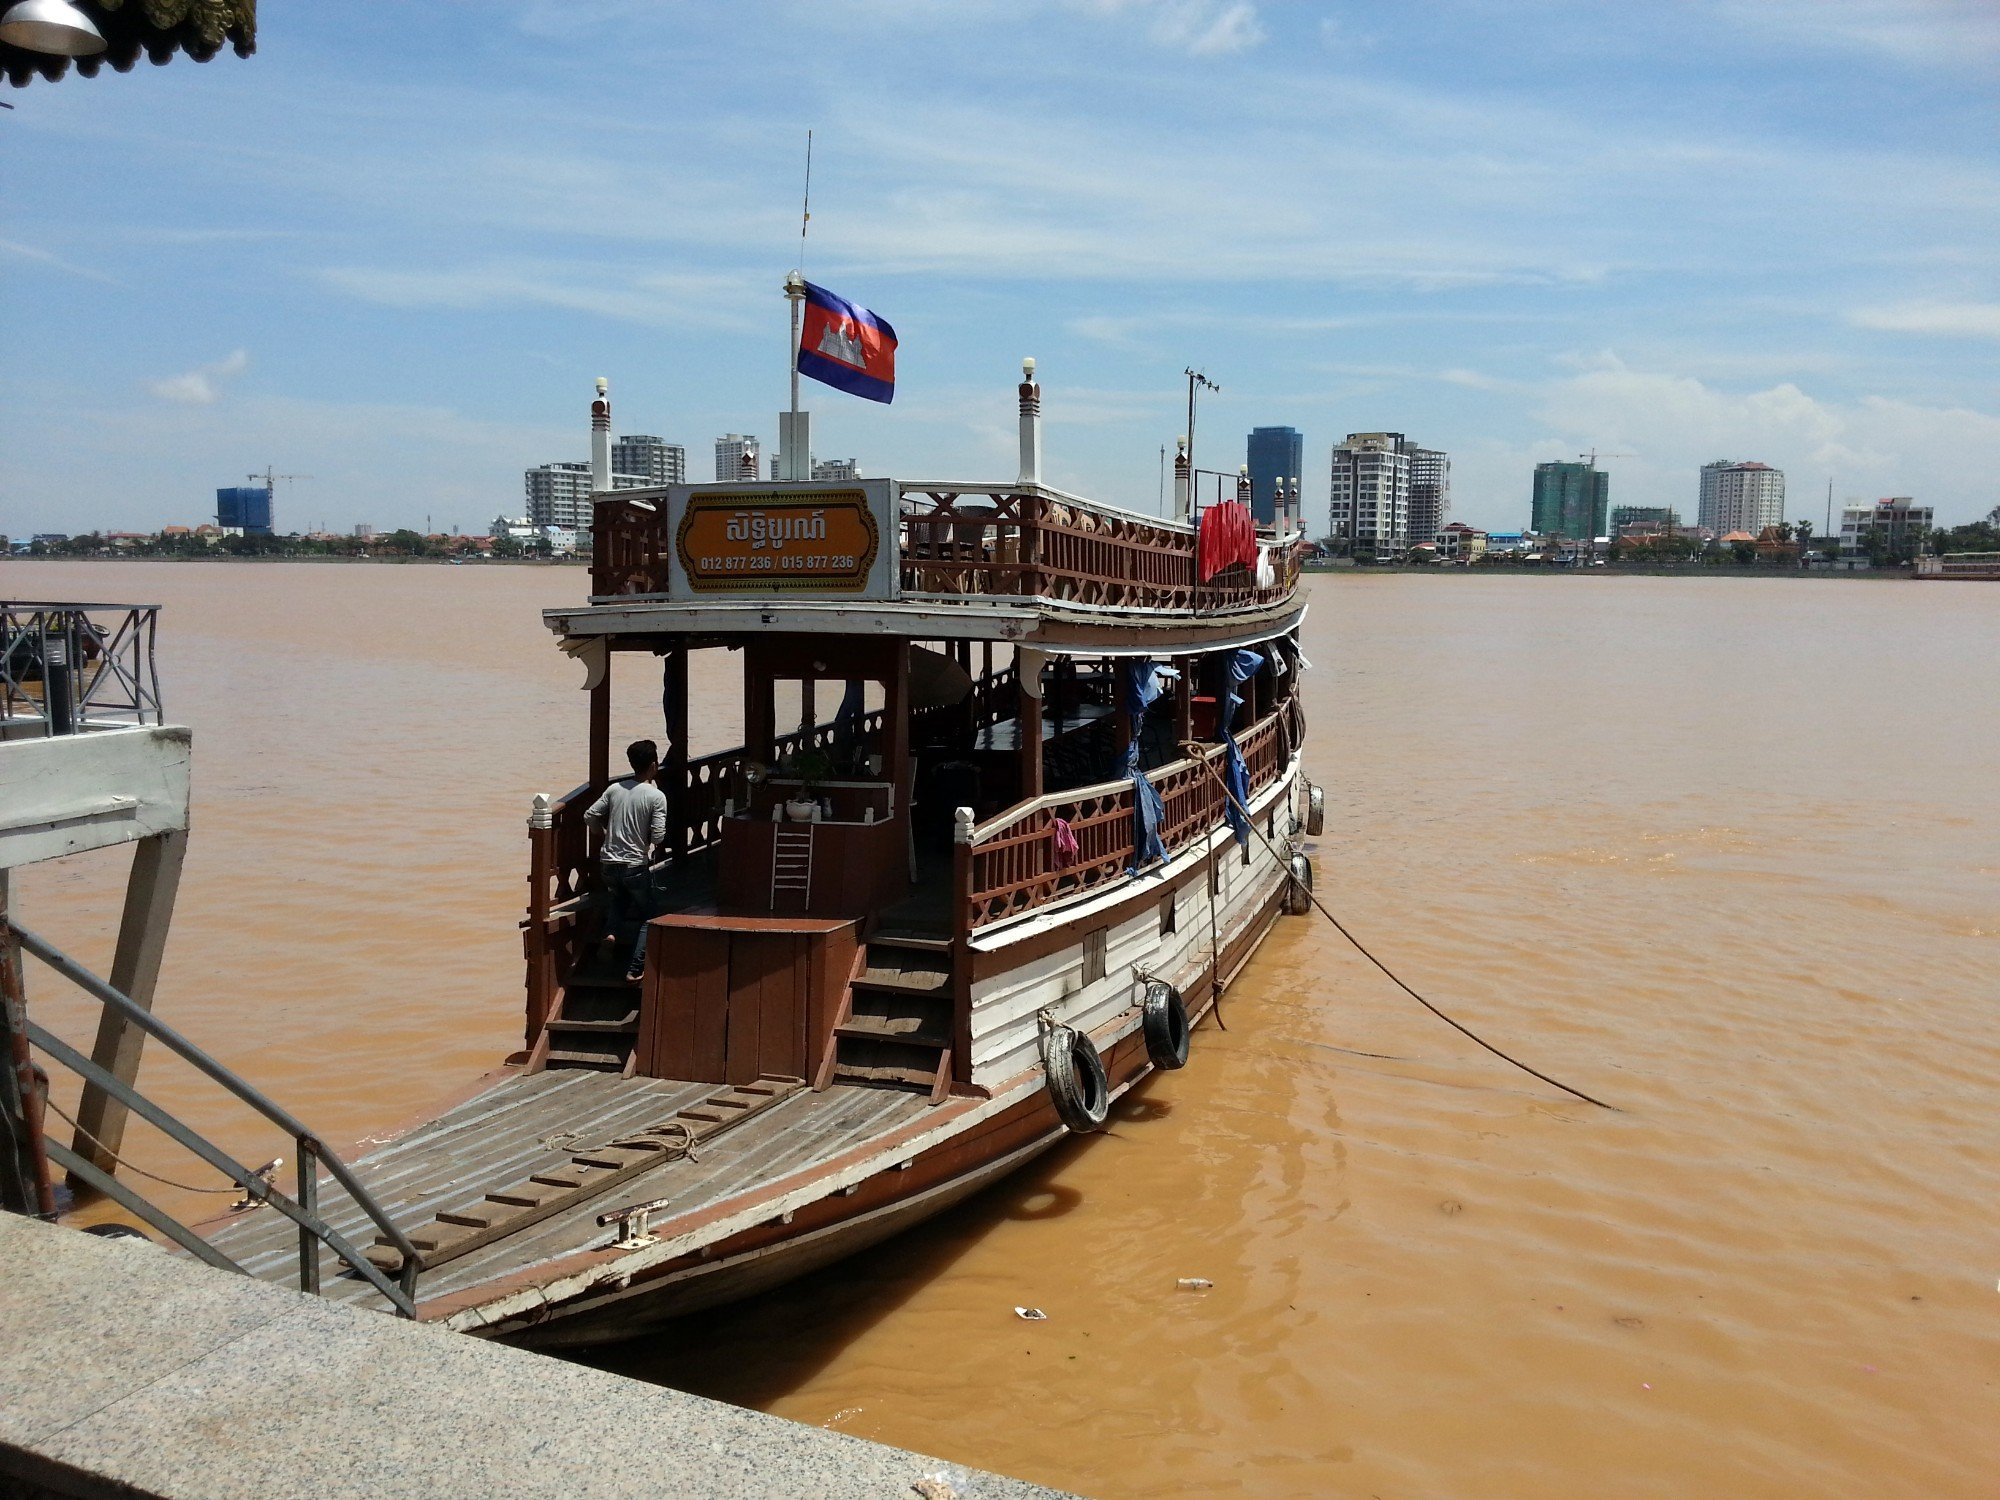 Sunset cruiser in Phnom Penh